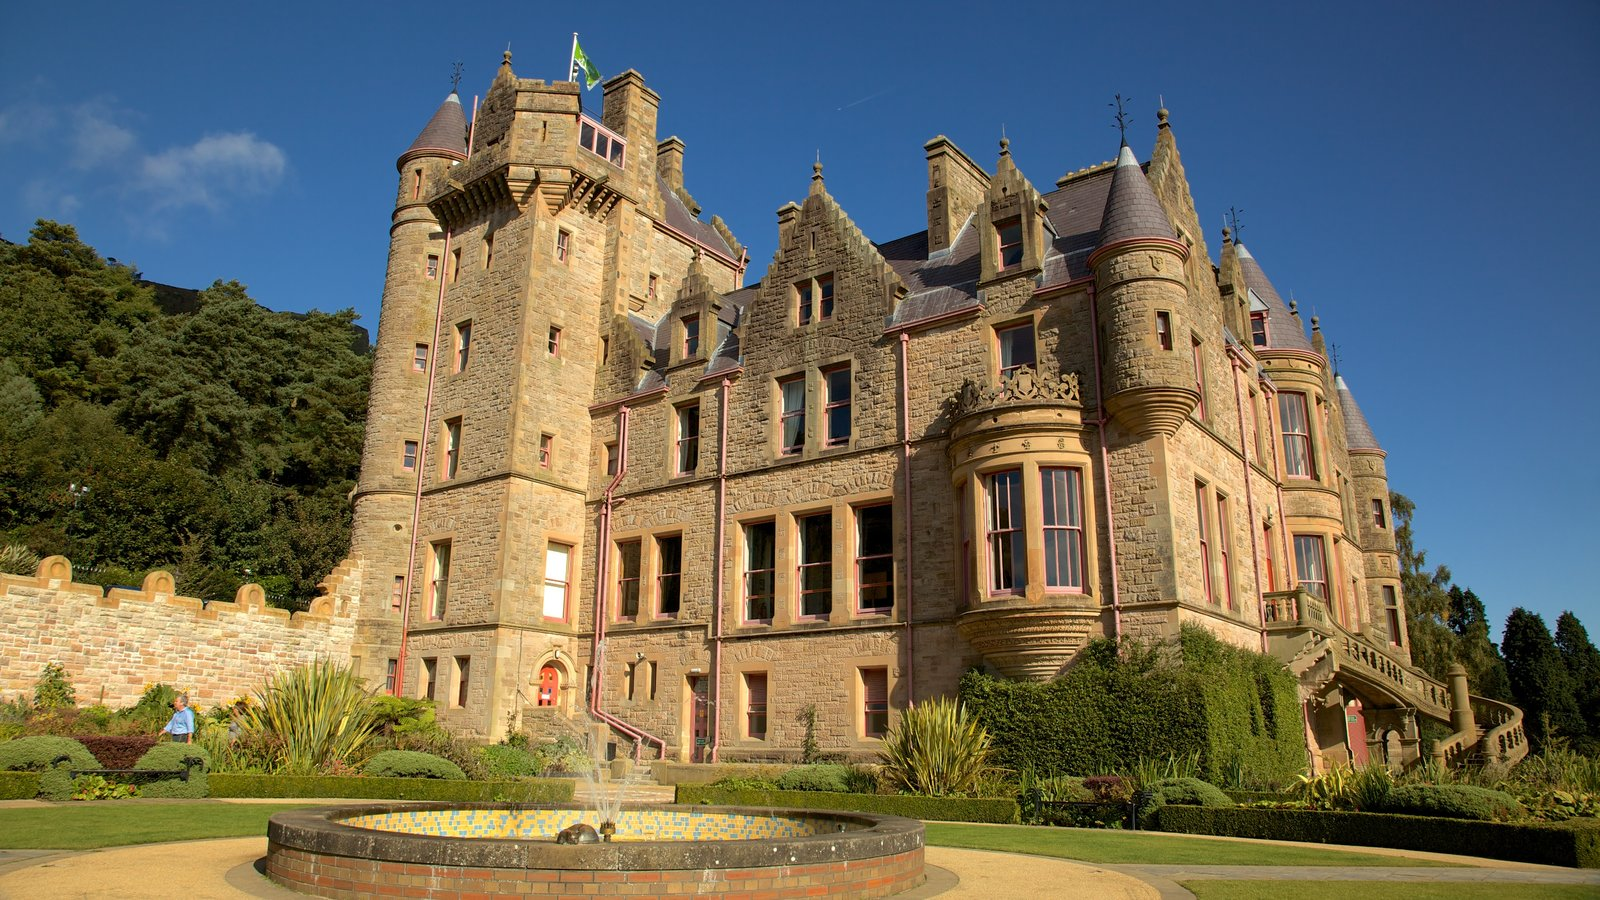 Belfast Castle which includes heritage architecture, a fountain and a castle